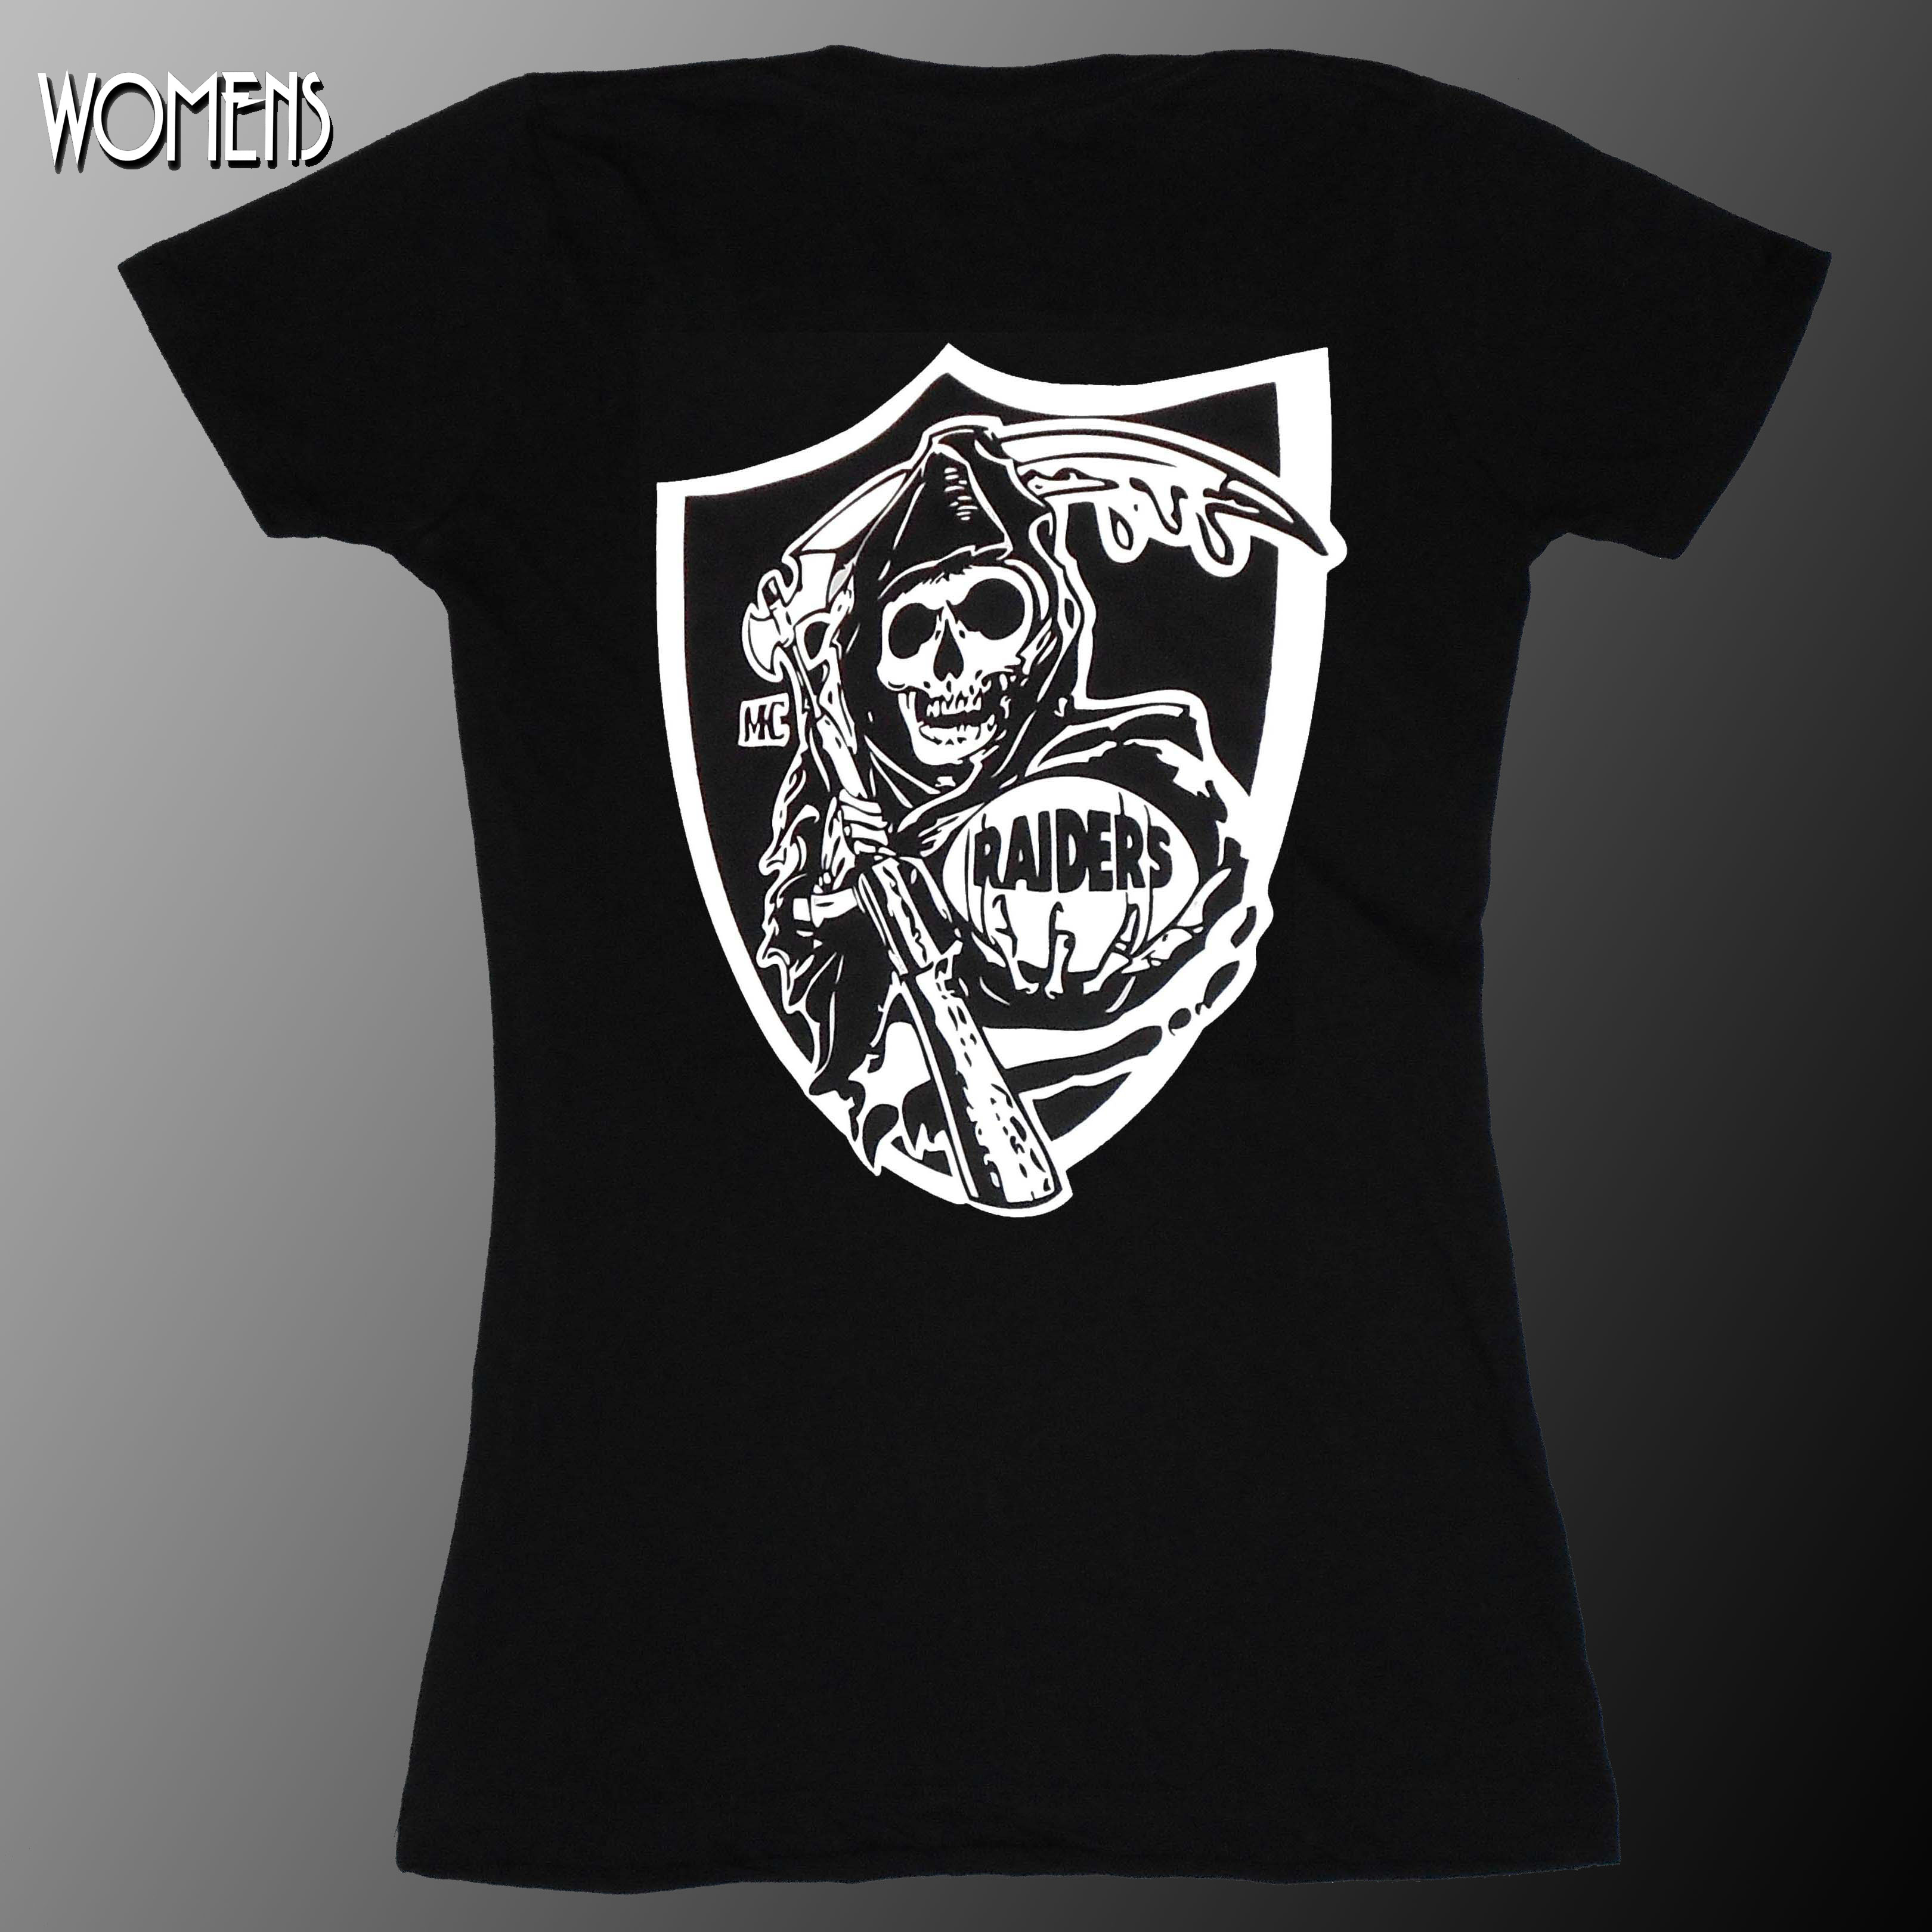 Black Hole Raiders Shirts - Pics about space